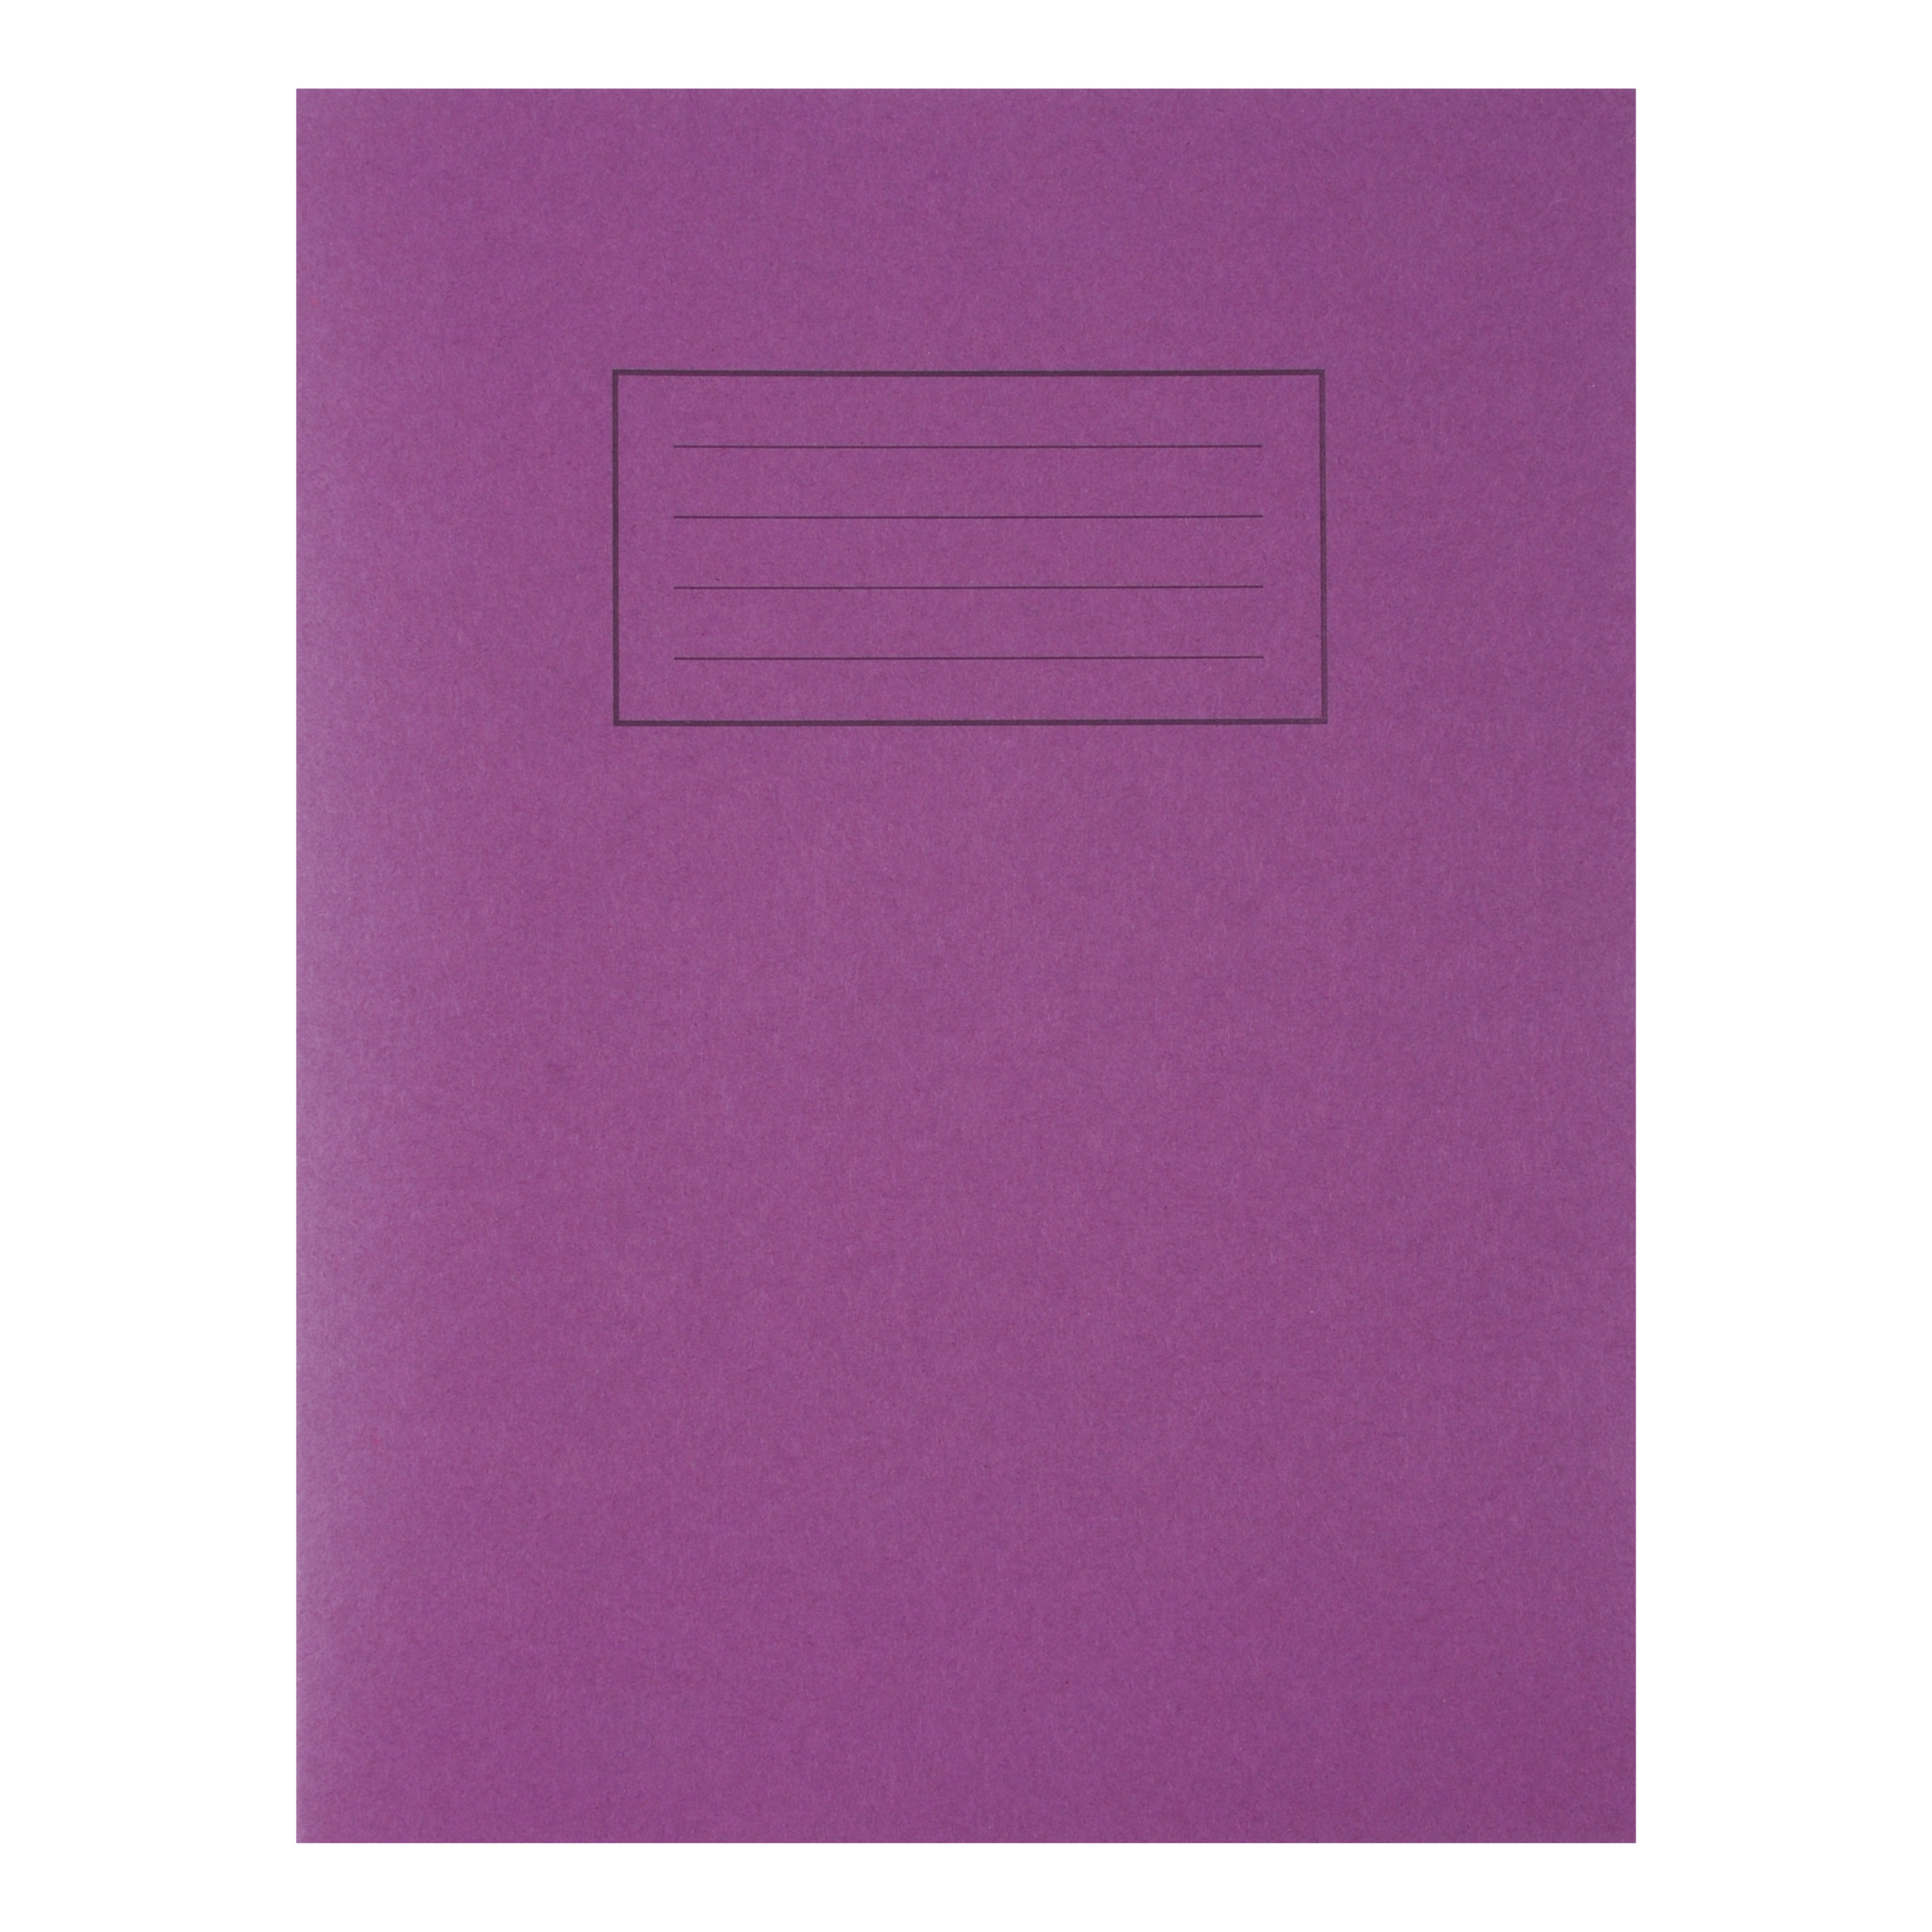 Silvine Exercise Book Ruled and Margin 80 Pages 75gsm 229x178mm Purple Ref EX100 Pack 10